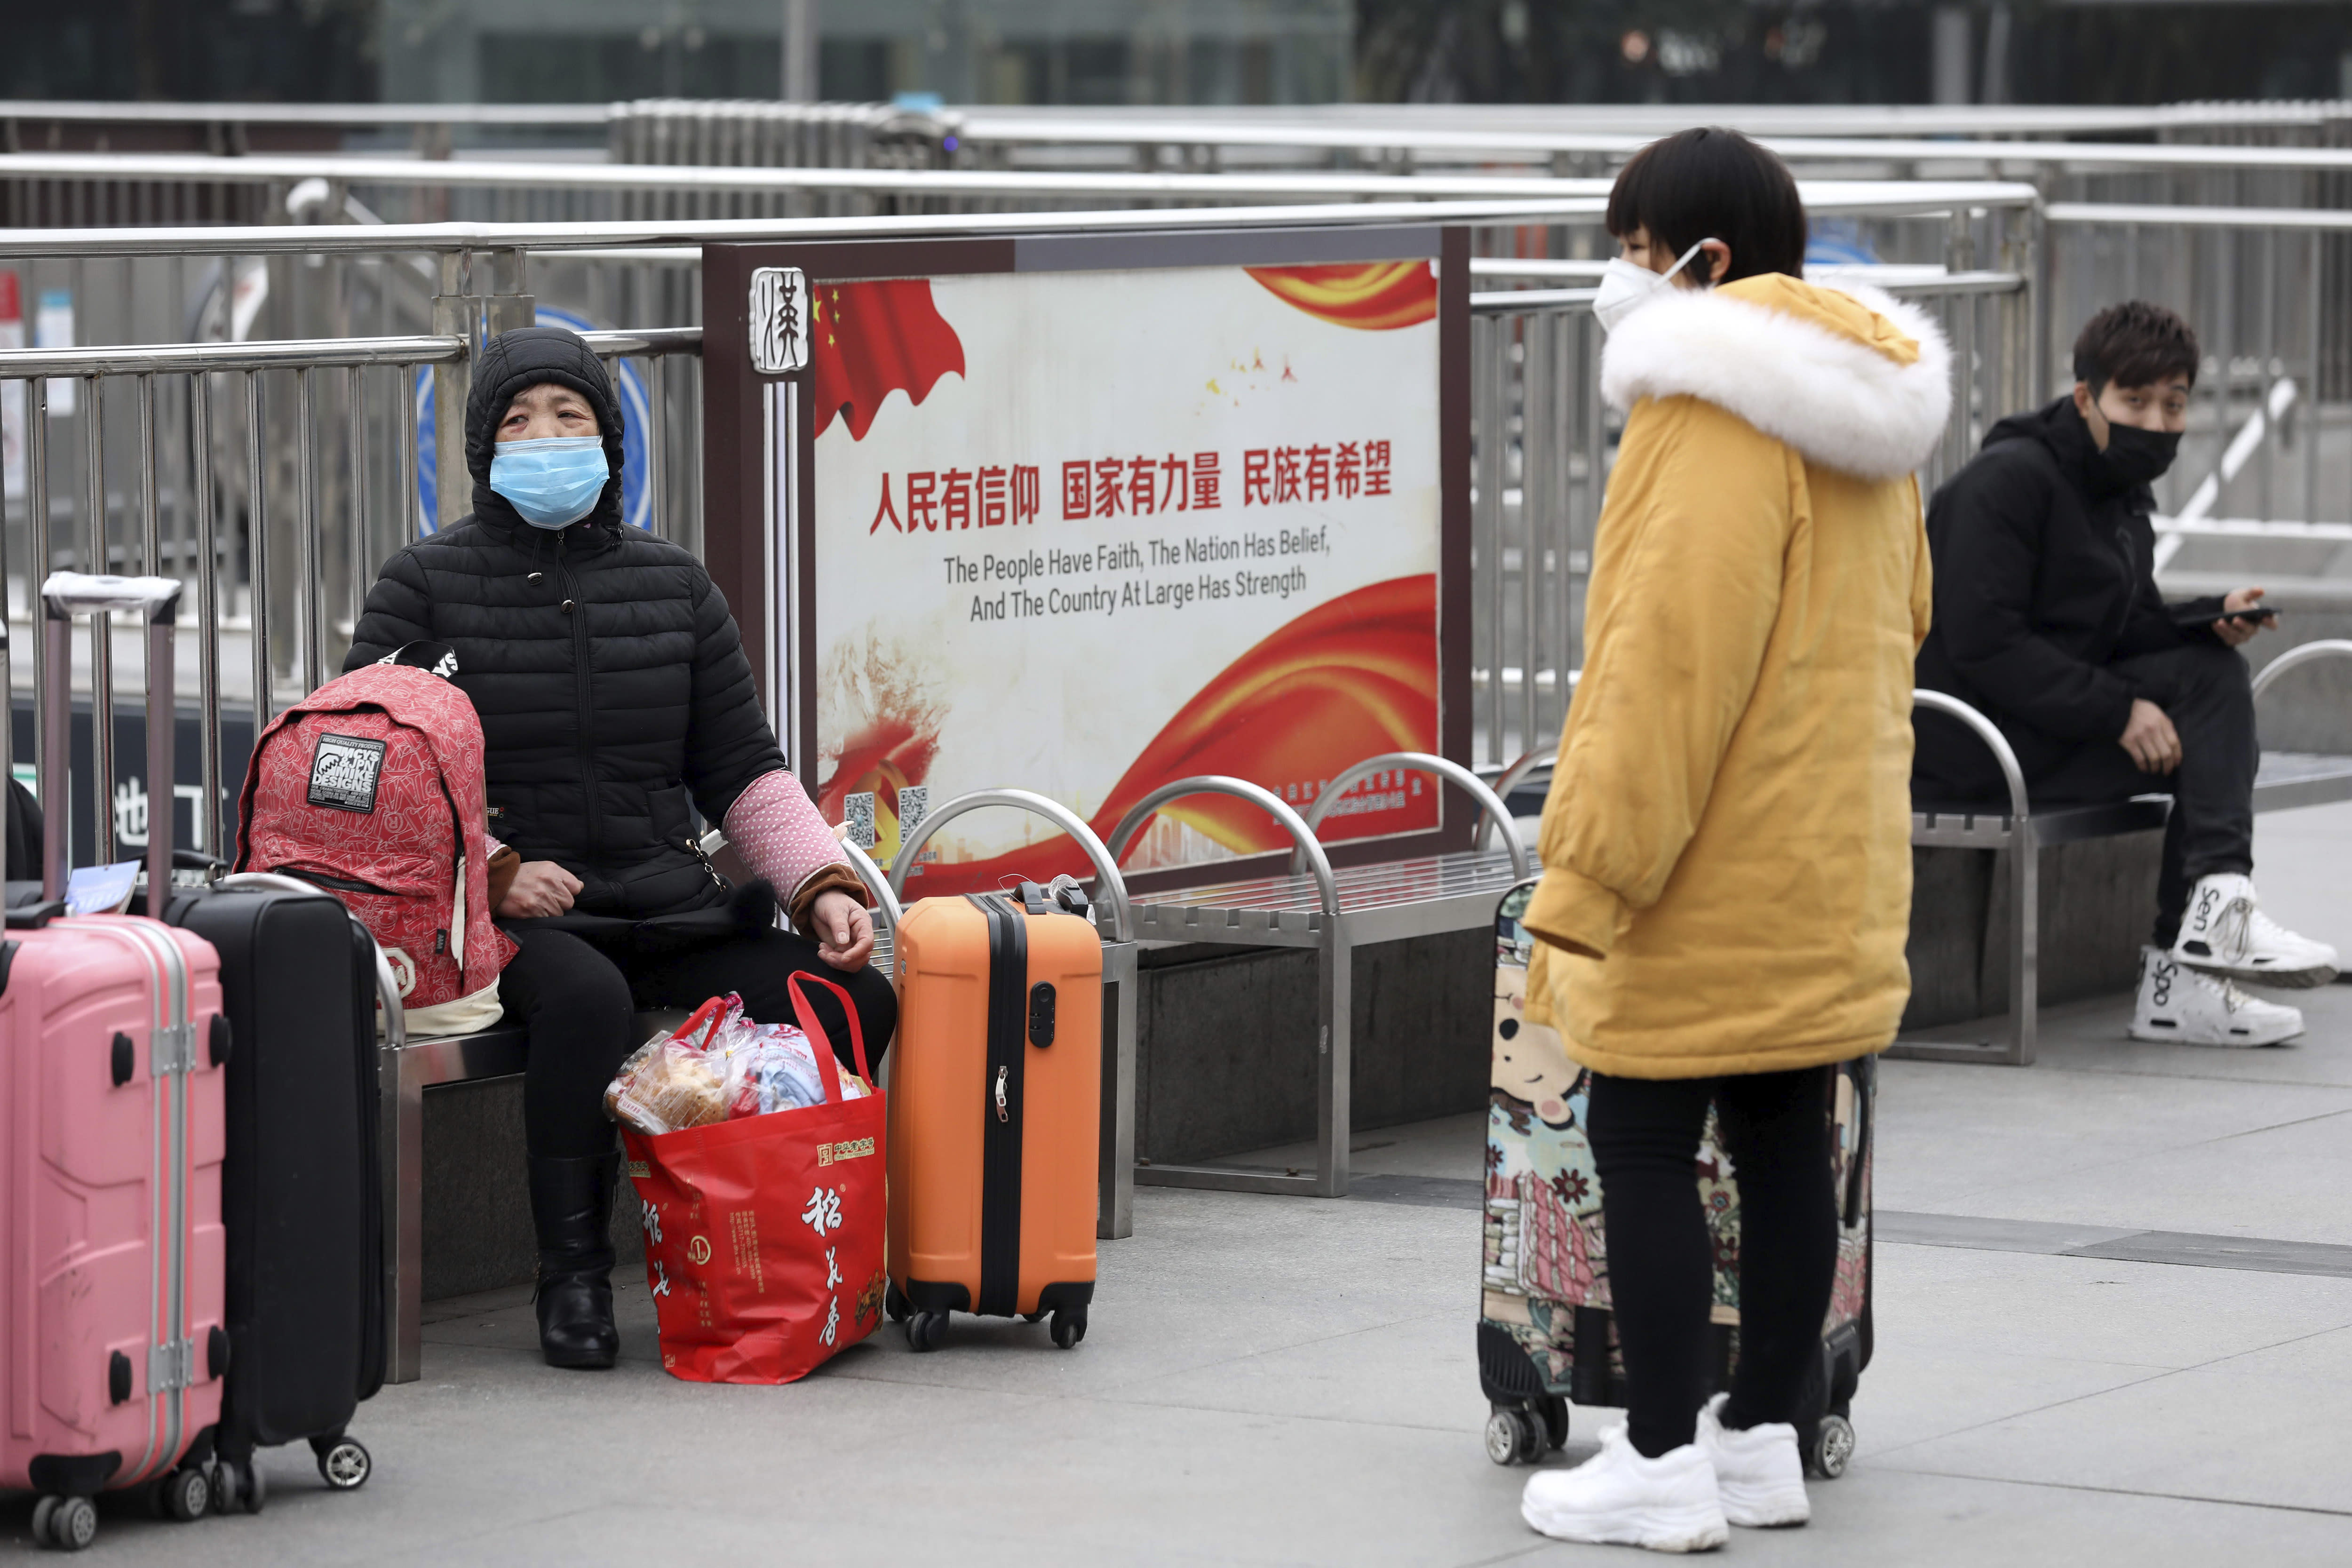 Chances of Canadian virus outbreak low, says official, as China widens lockdown